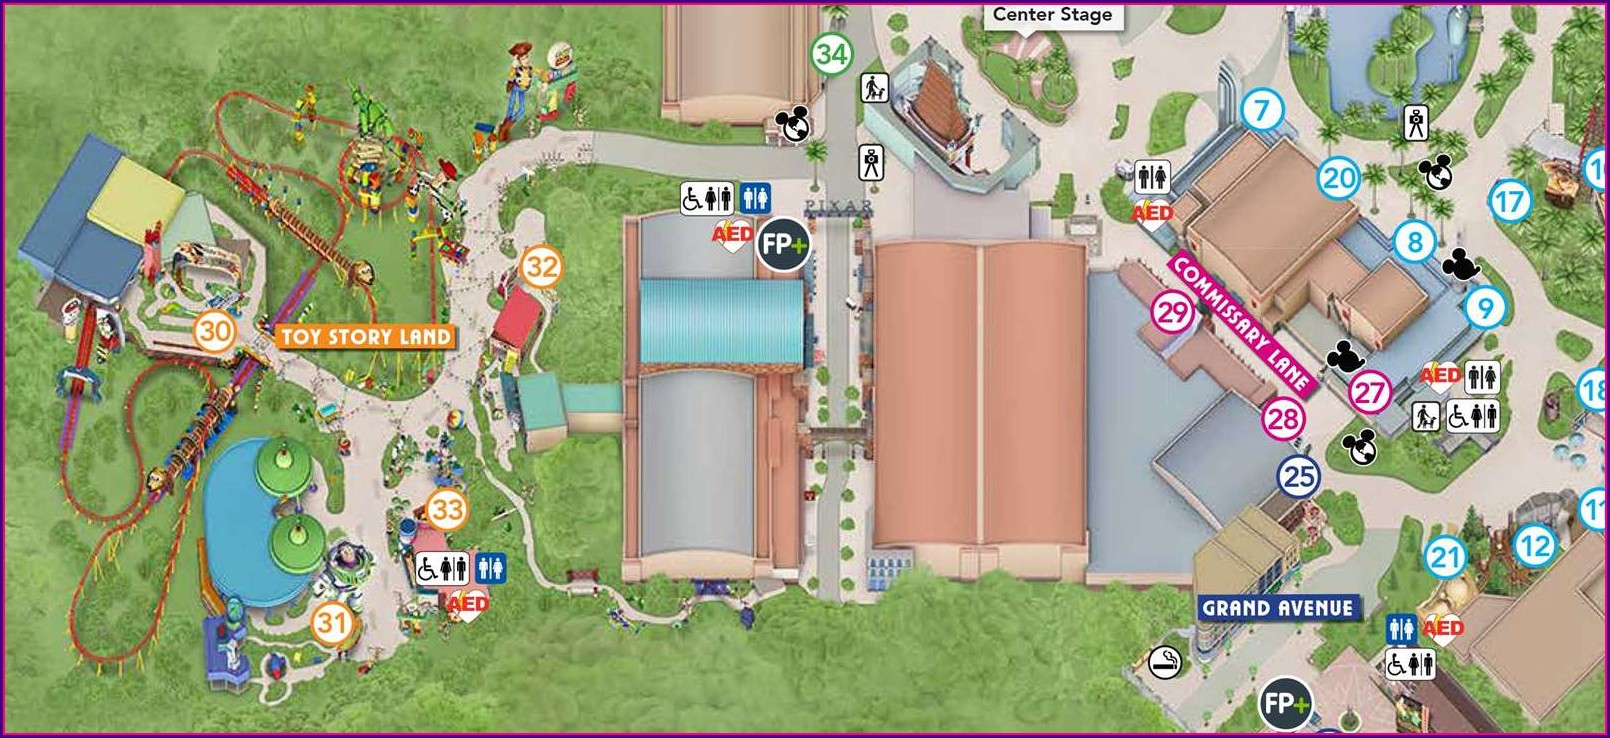 Hollywood Studios Toy Story Land Map